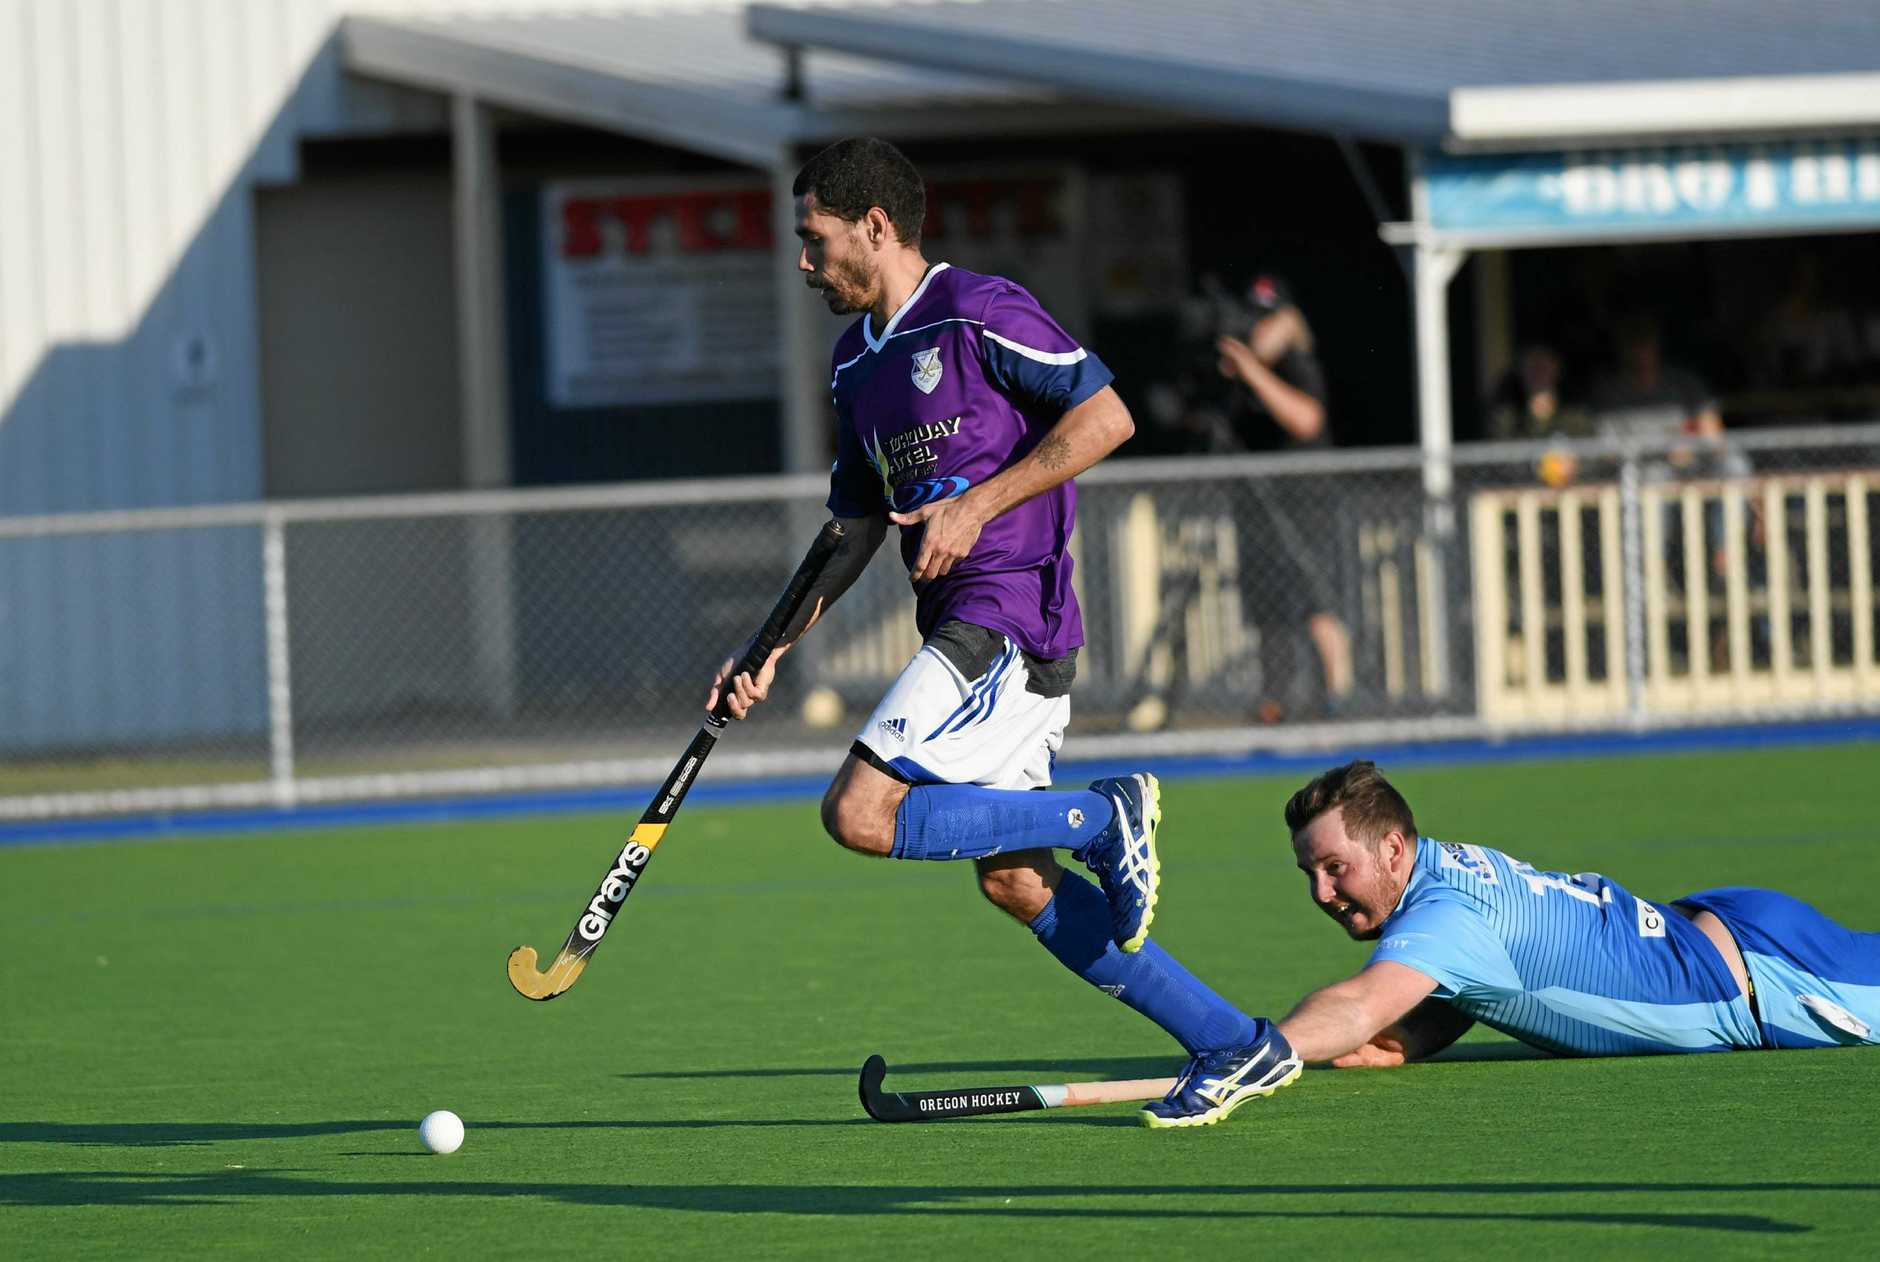 WINNERS: Hervey Bay Brothers' Mickey Clubb put the pace on as he got away from Maryborough BroRoos' Cody Goldenstein in Brothers' 6-4 win to book a place in the Fraser Coast League grand final this Saturday.